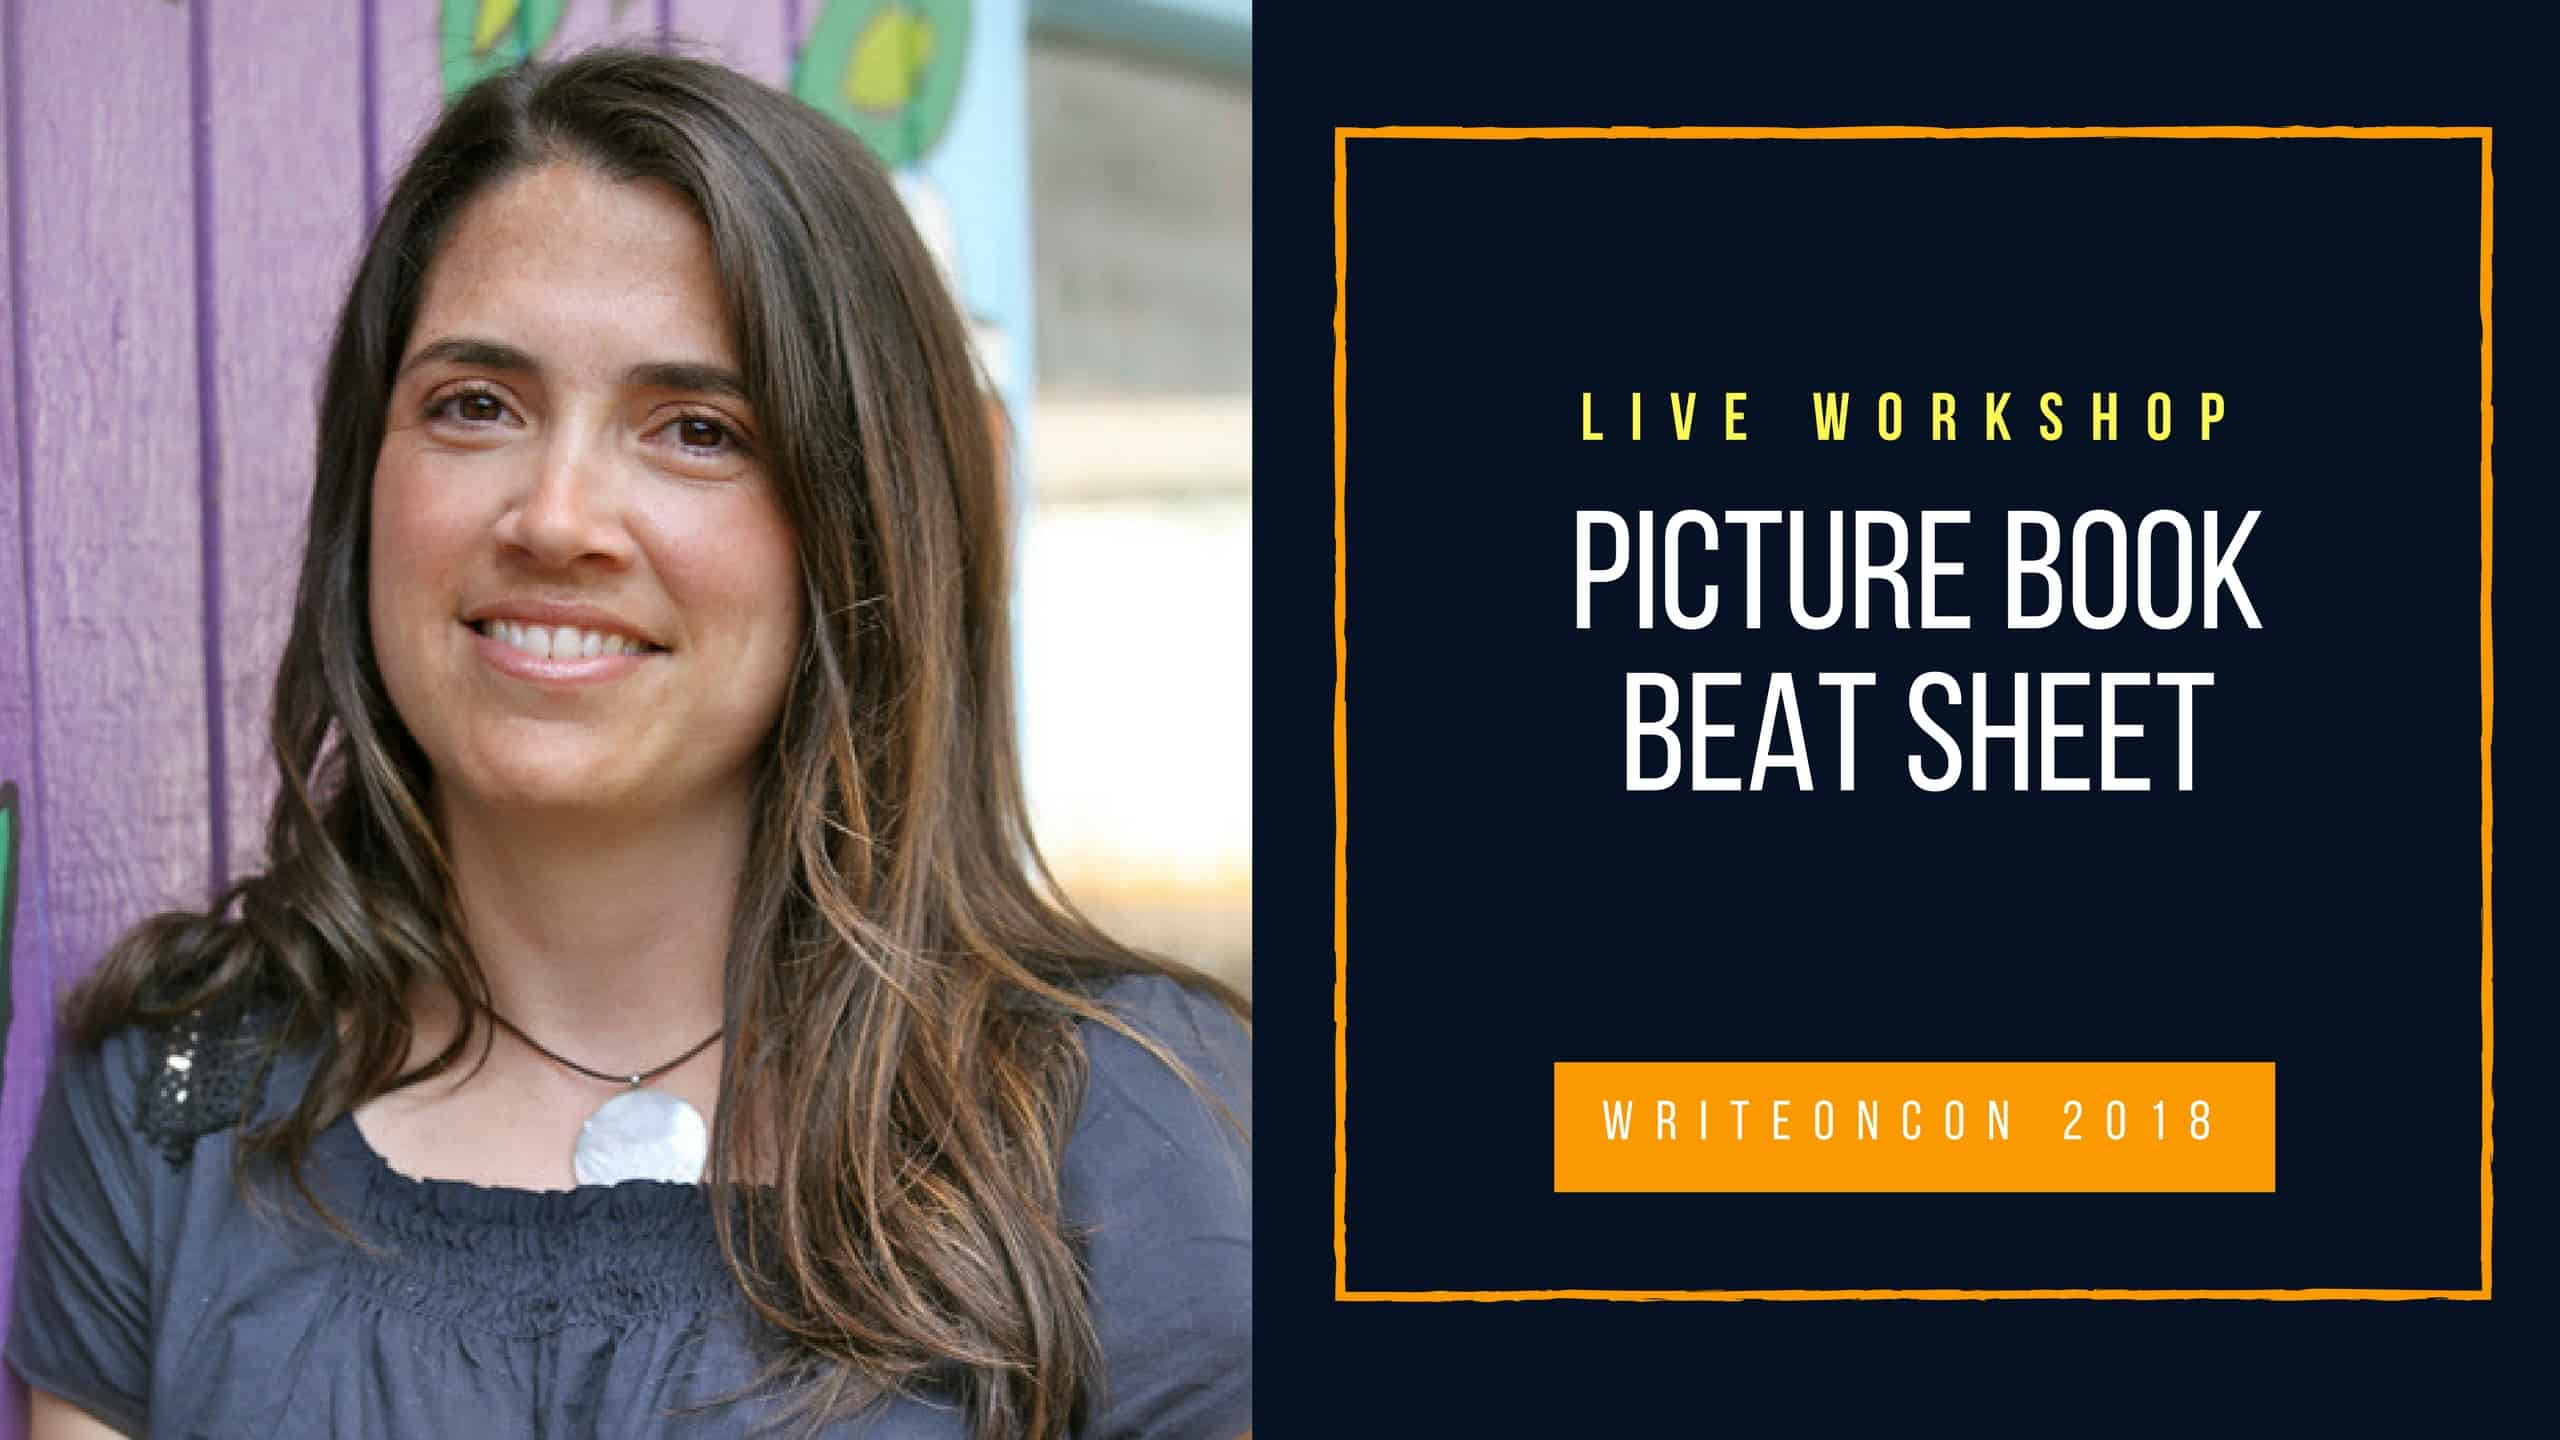 LIVE WORKSHOP: Picture Book Beat Sheet